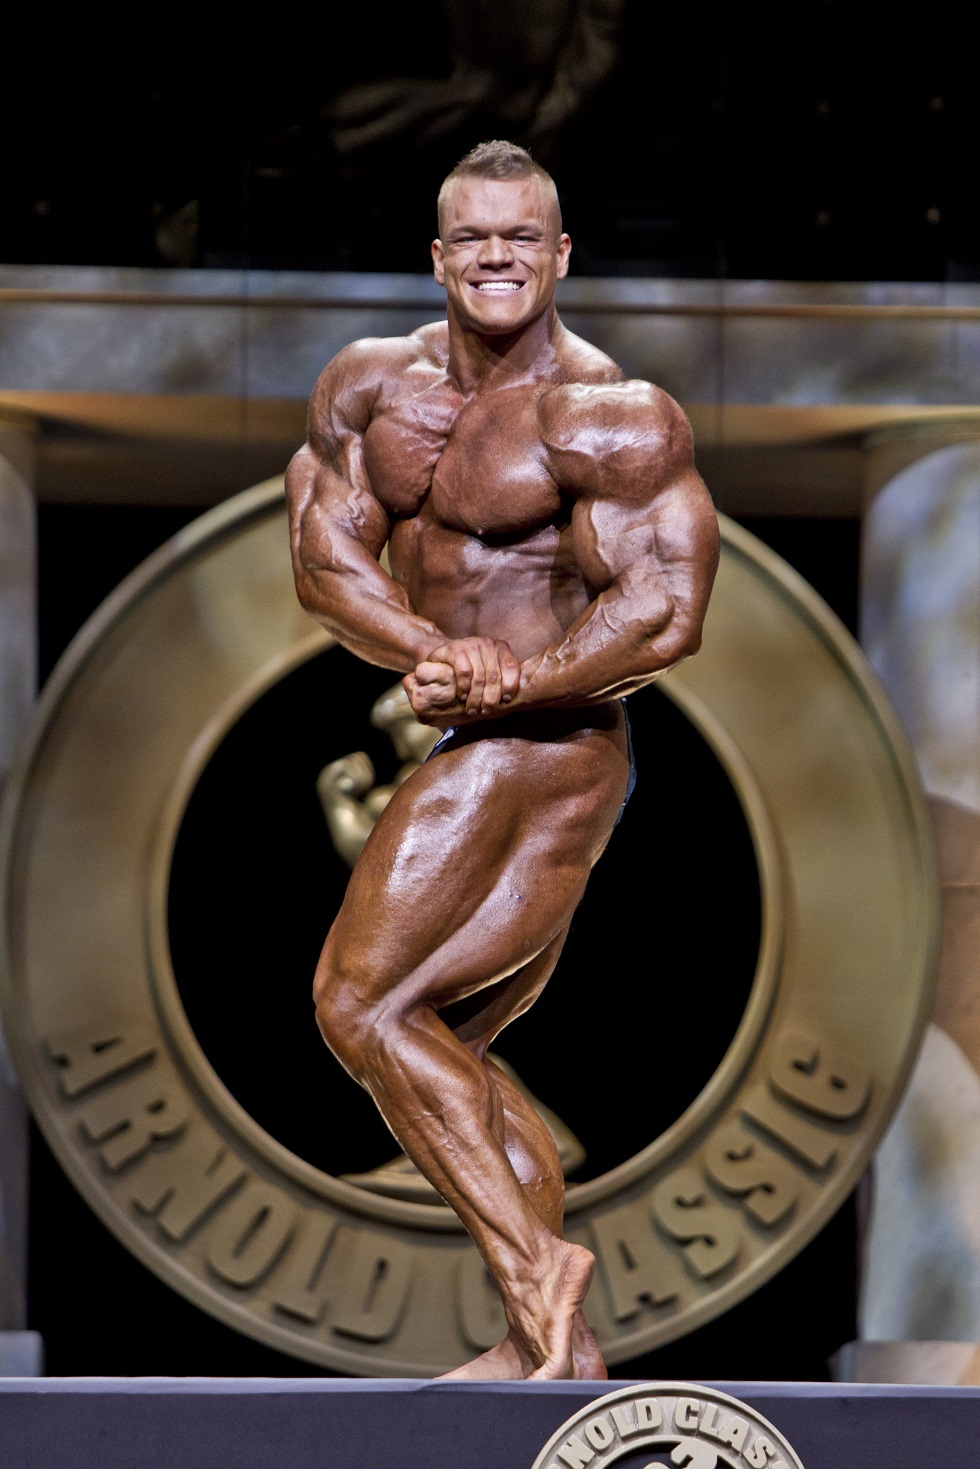 Dallas 'Big Country' McCarver